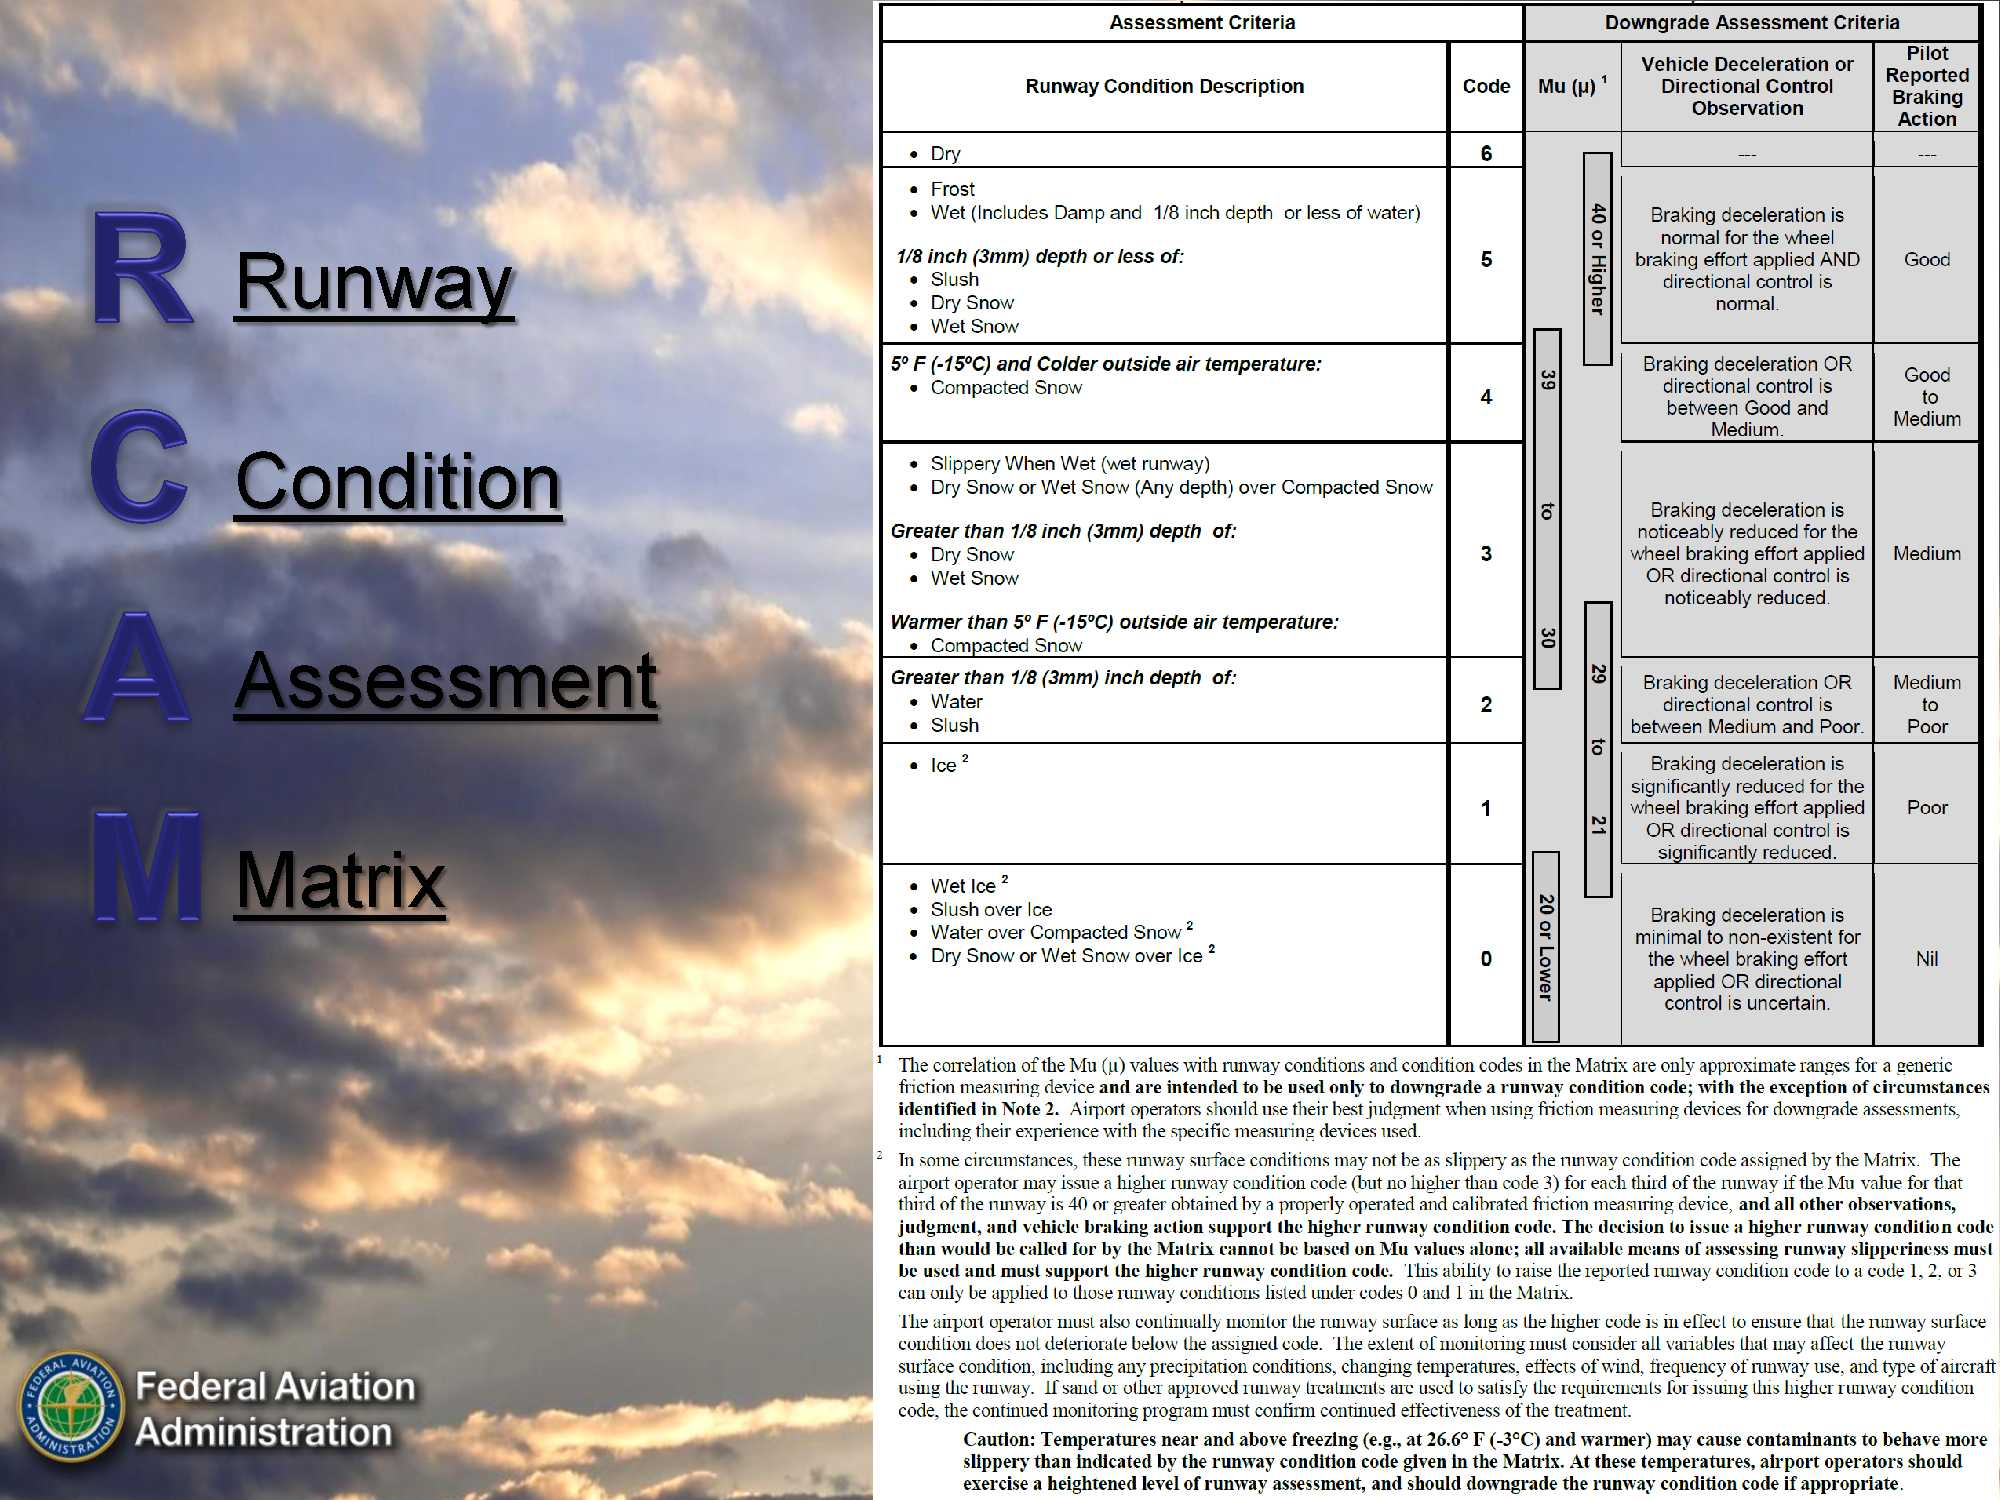 runway-condition-assessment-matrix